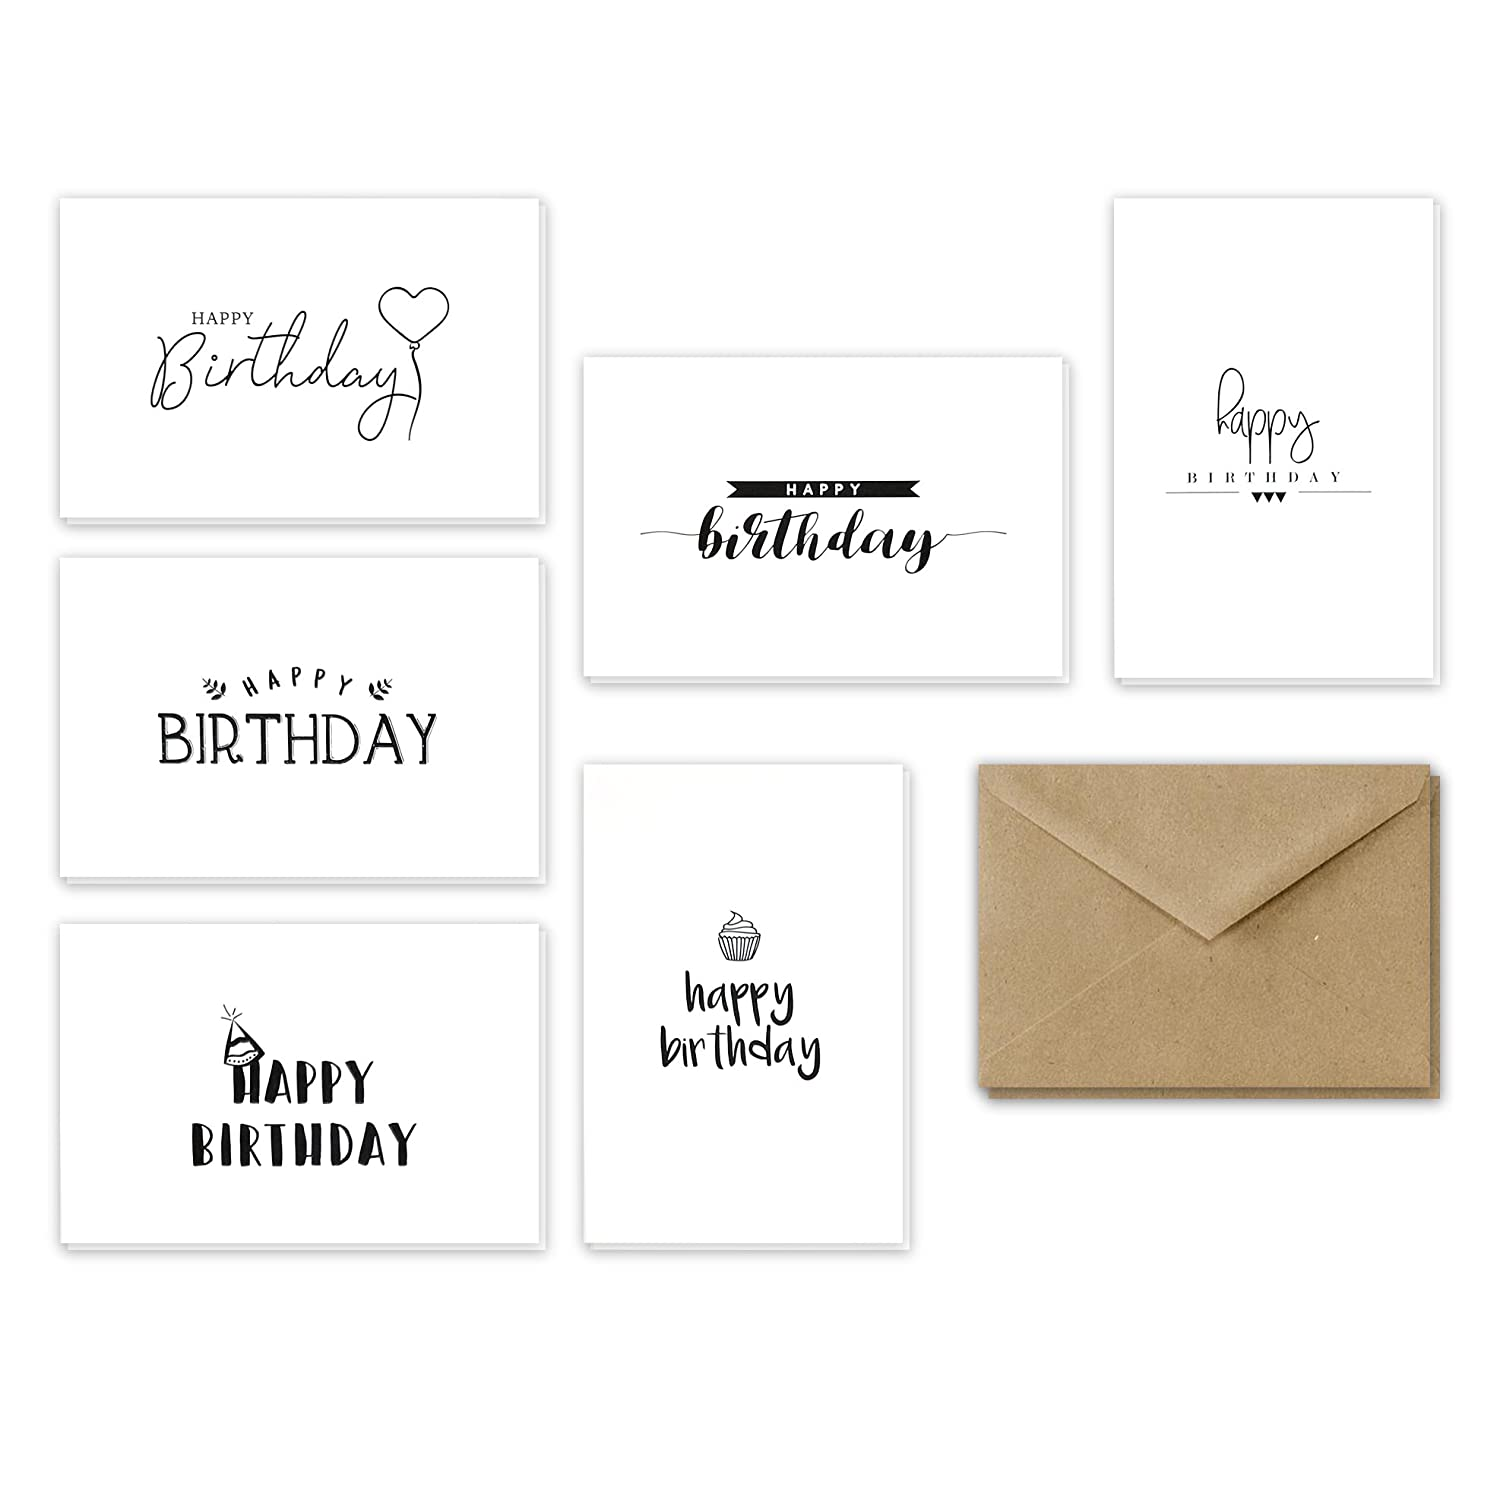 Happy Birthday Greeting Cards Birthday Cards Handwritten Birthday